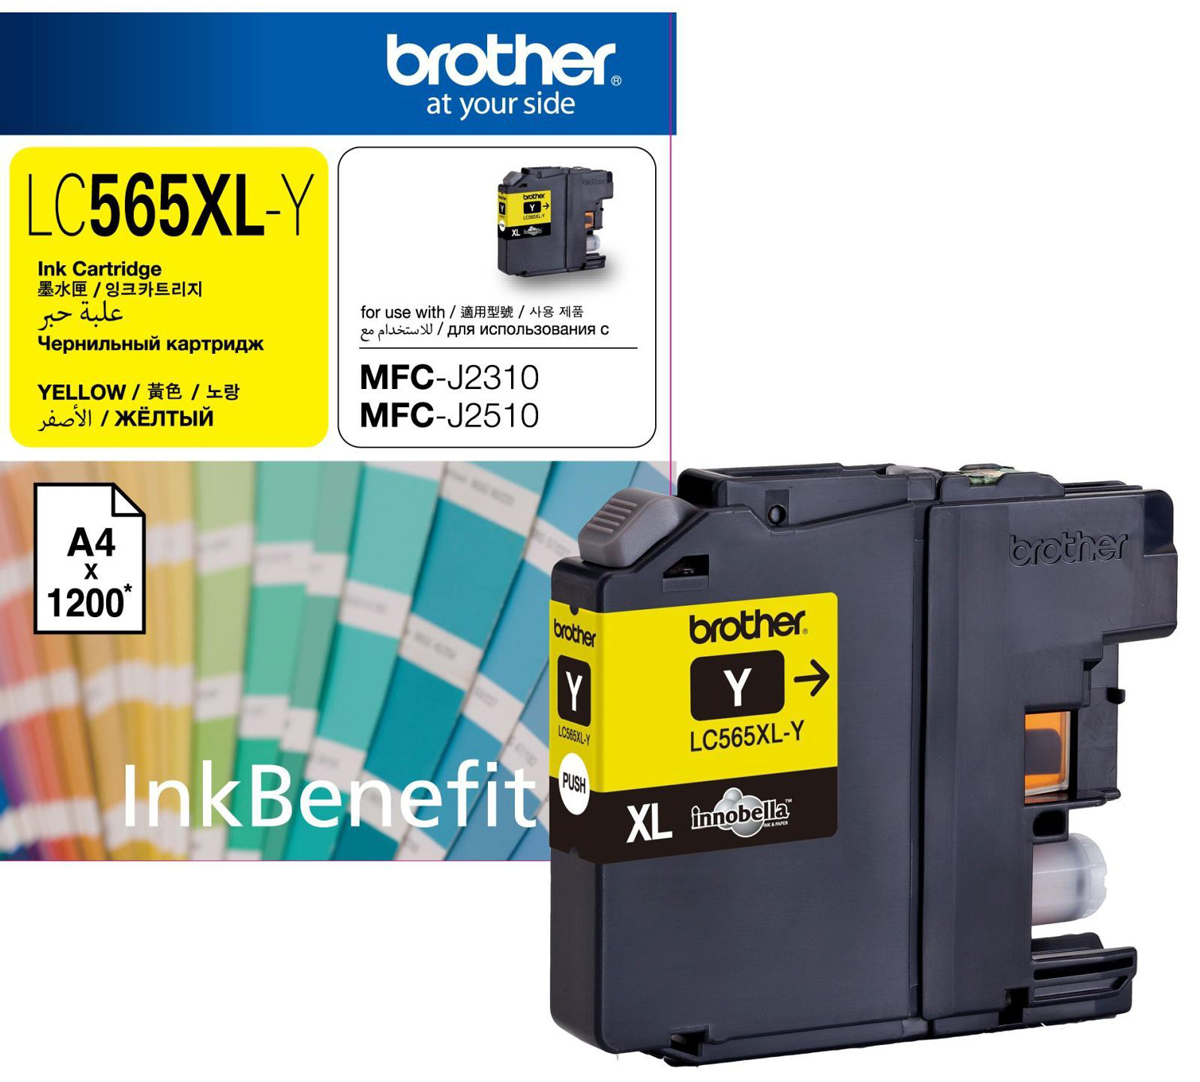 Brother LC565XLY, Yellow картридж для Brother MFC-J2310, MFC-J2510, MFC-J3520, MFC-J3720 printhead 990 a3 print head for brother mfc 5890c mfc 6490cw 6490dw mfc 6690c